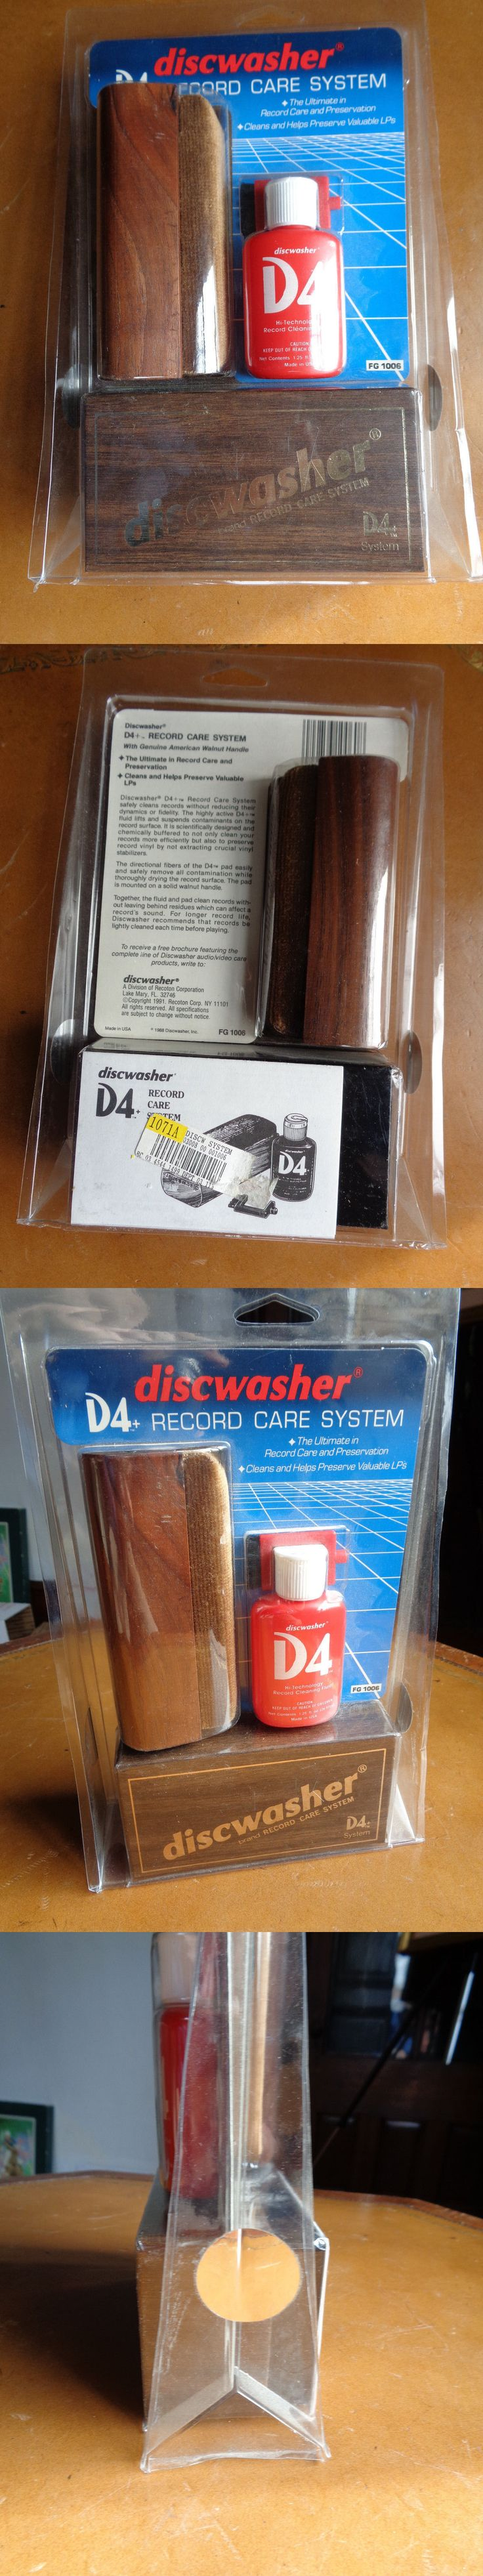 Vinyl Record Cleaning: Vintage Discwasher Disc Washer Vinyl Record Care Cleaning System D4 Brush Sealed BUY IT NOW ONLY: $75.0